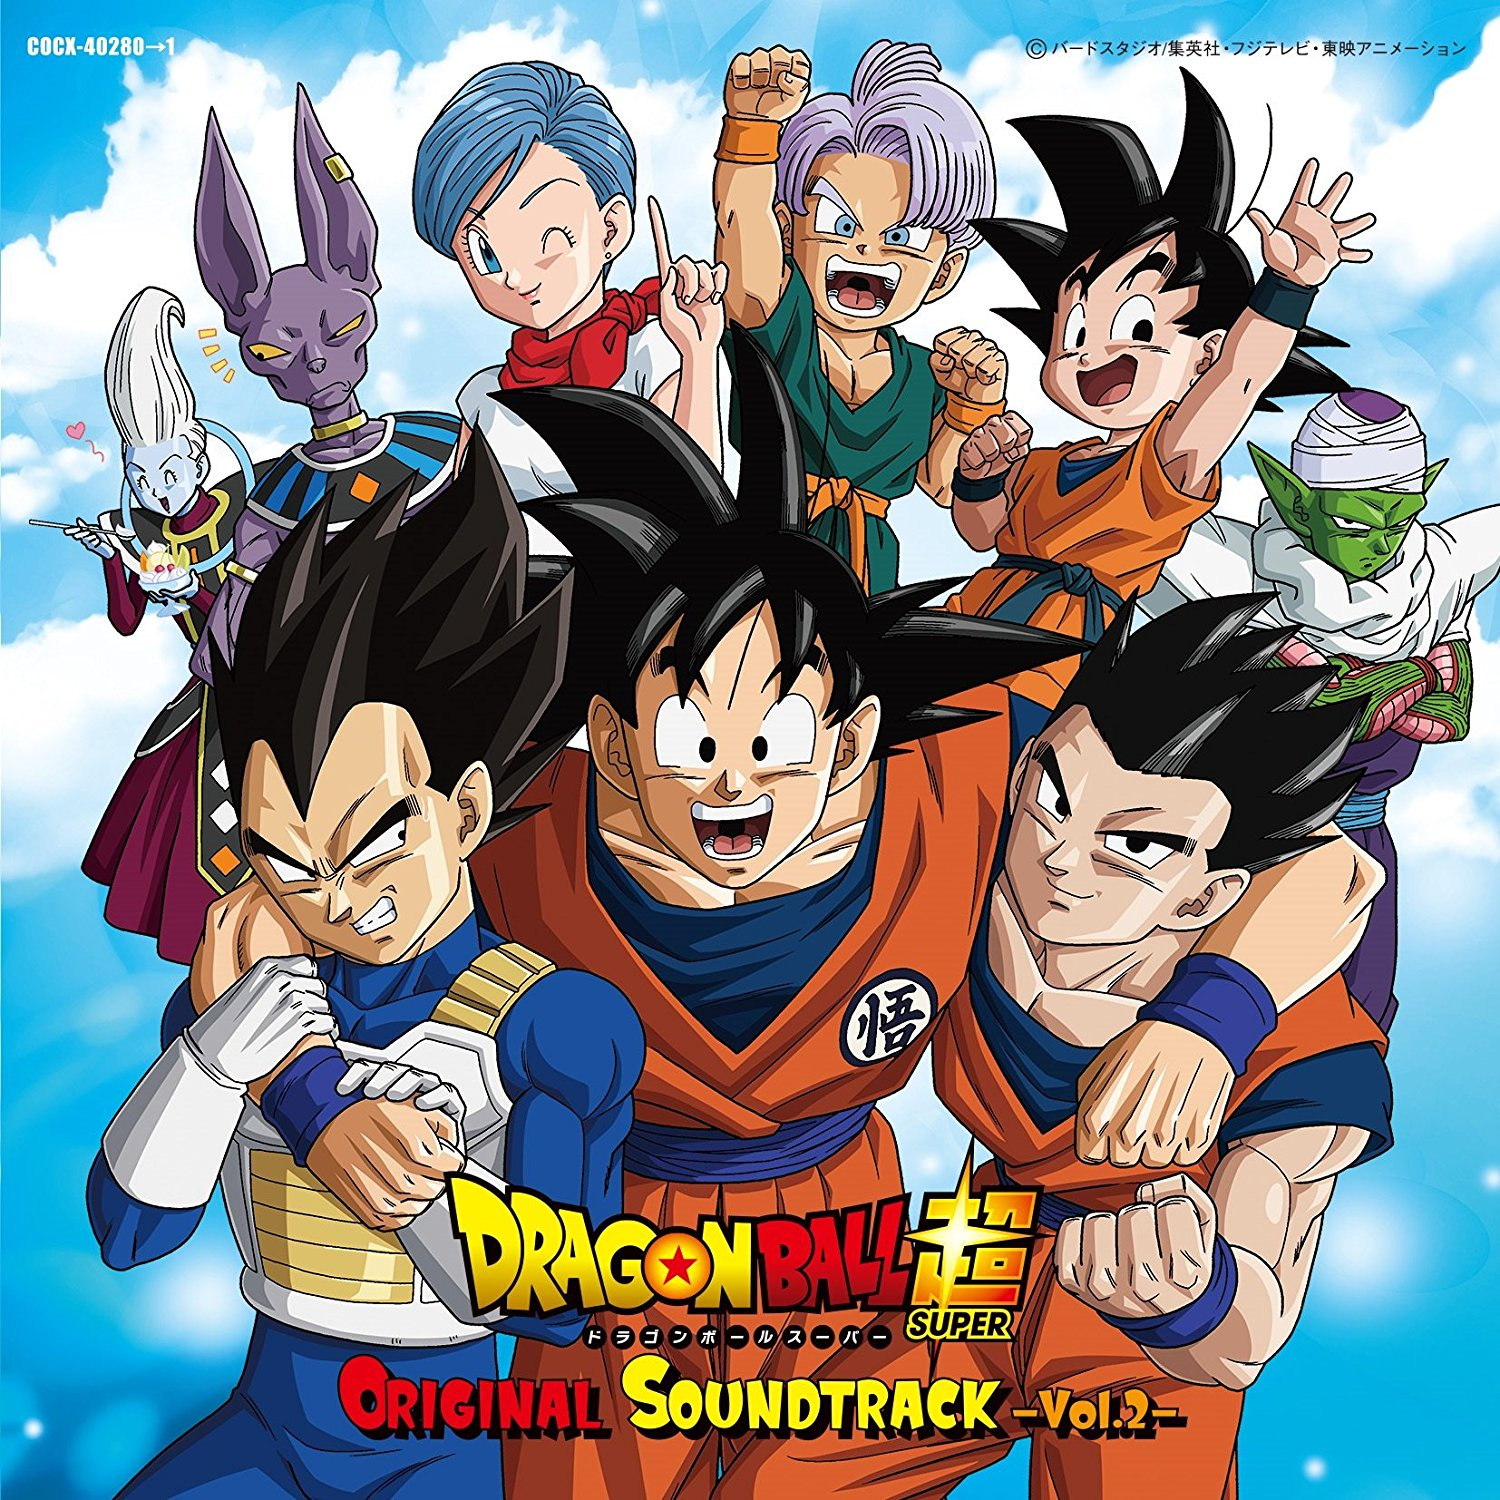 Original Soundtrack 2